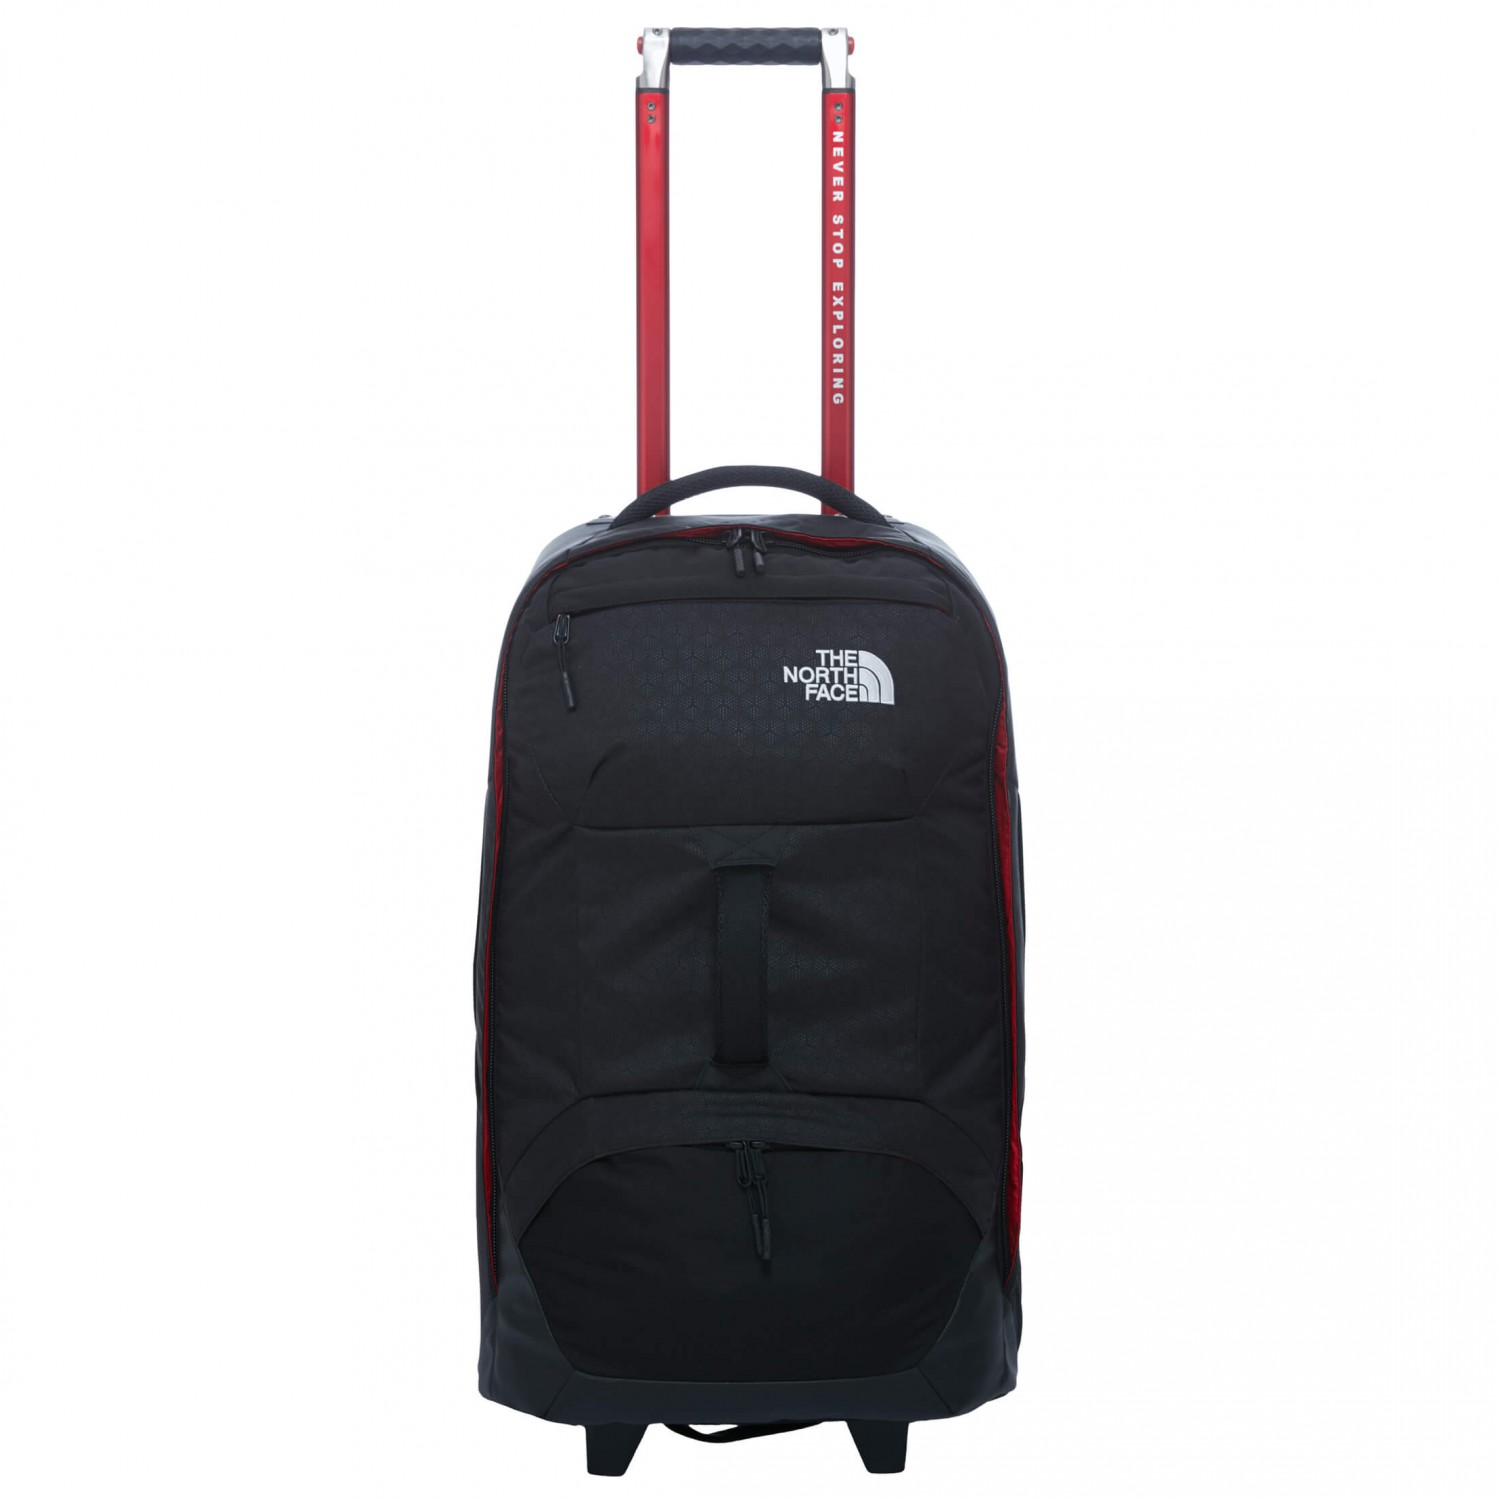 Sac De Voyage The North Face Longhaul 26 0laQNeVMGZ